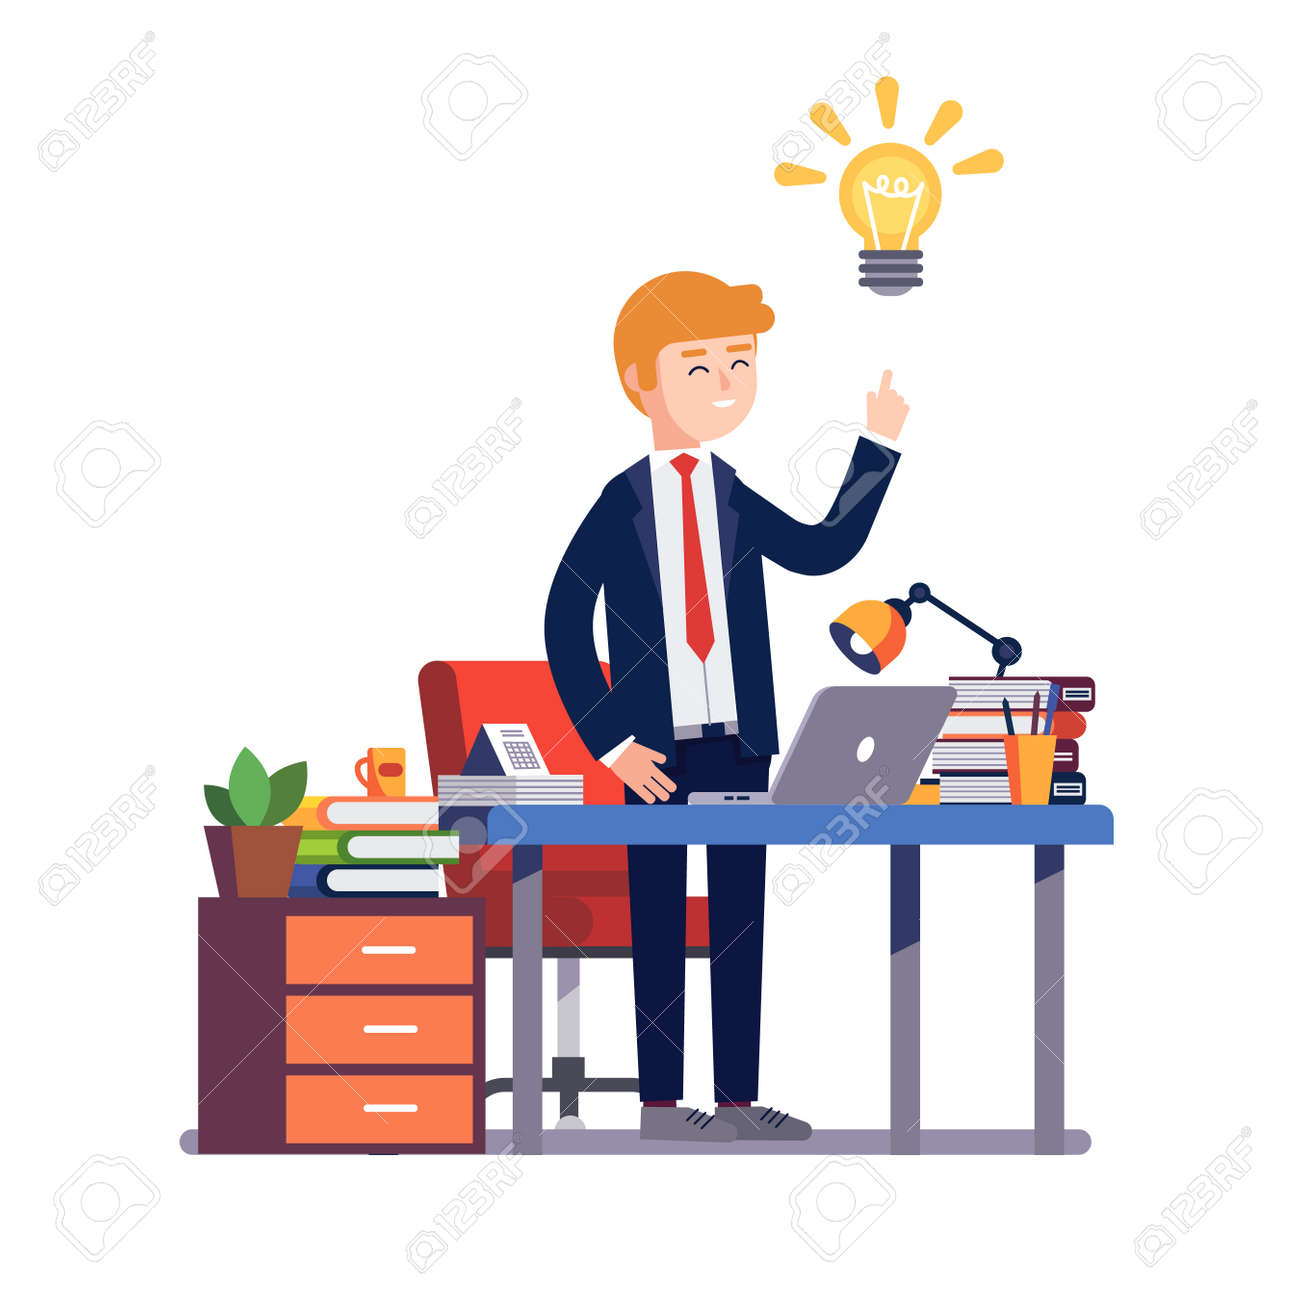 Business man entrepreneur in a suit stands happily having a new bright solution idea at his office desk. Modern colorful flat style vector illustration isolated on white background. - 67654590